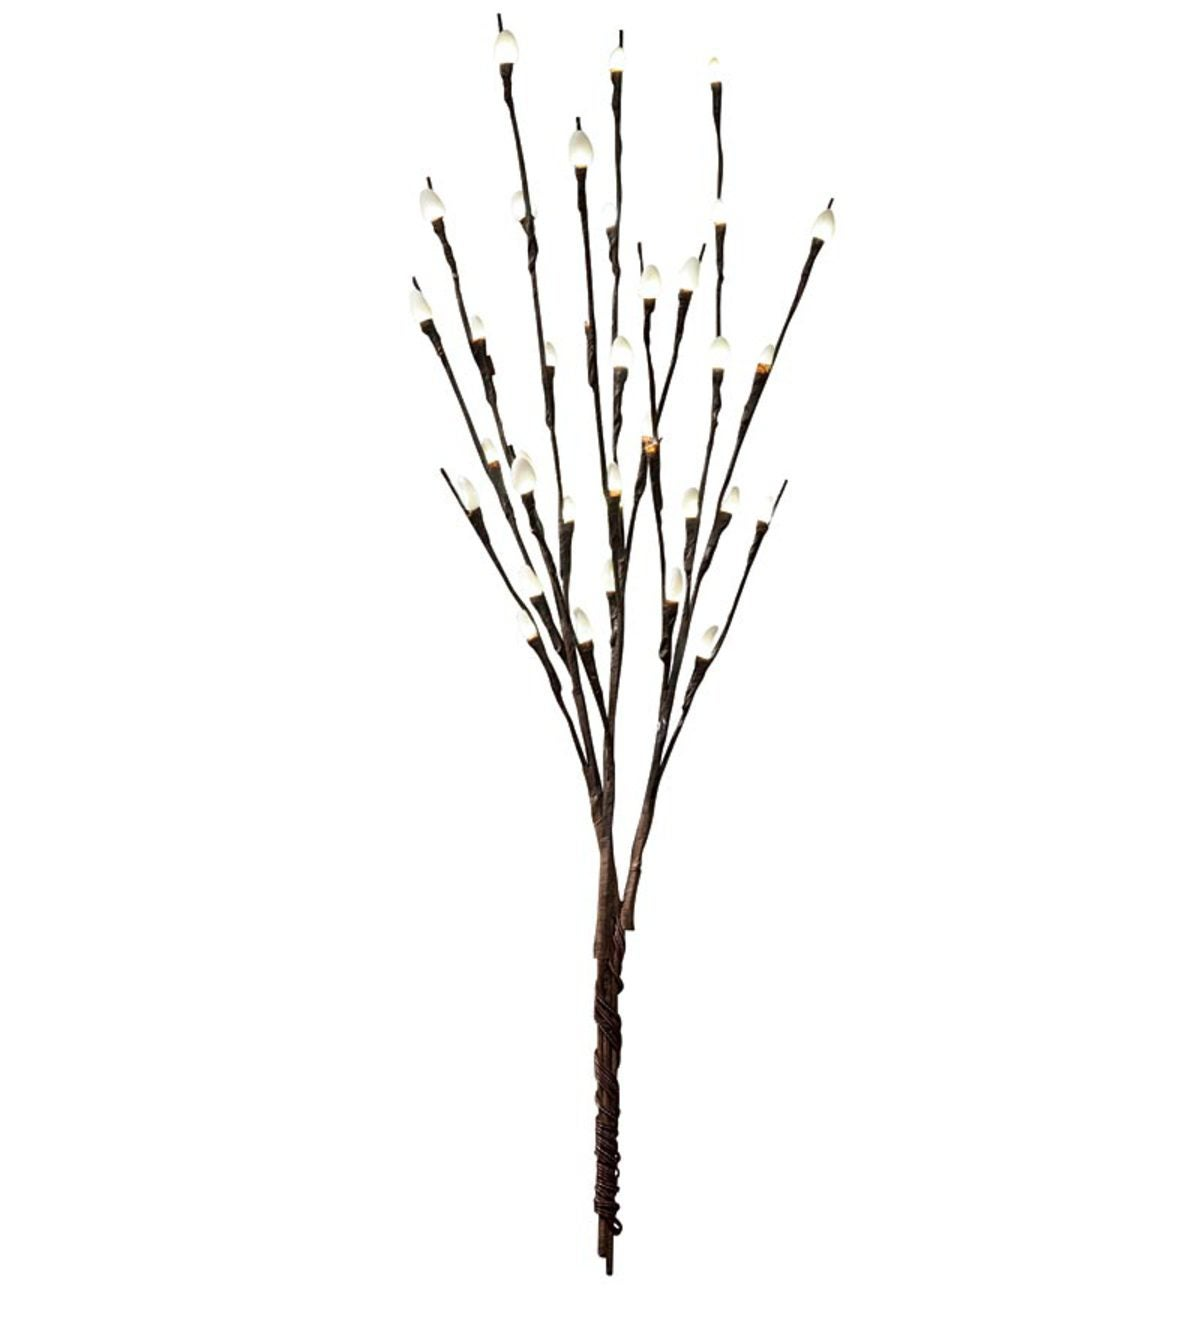 Pussy Willow LED Light Branches, Set of 3 - White